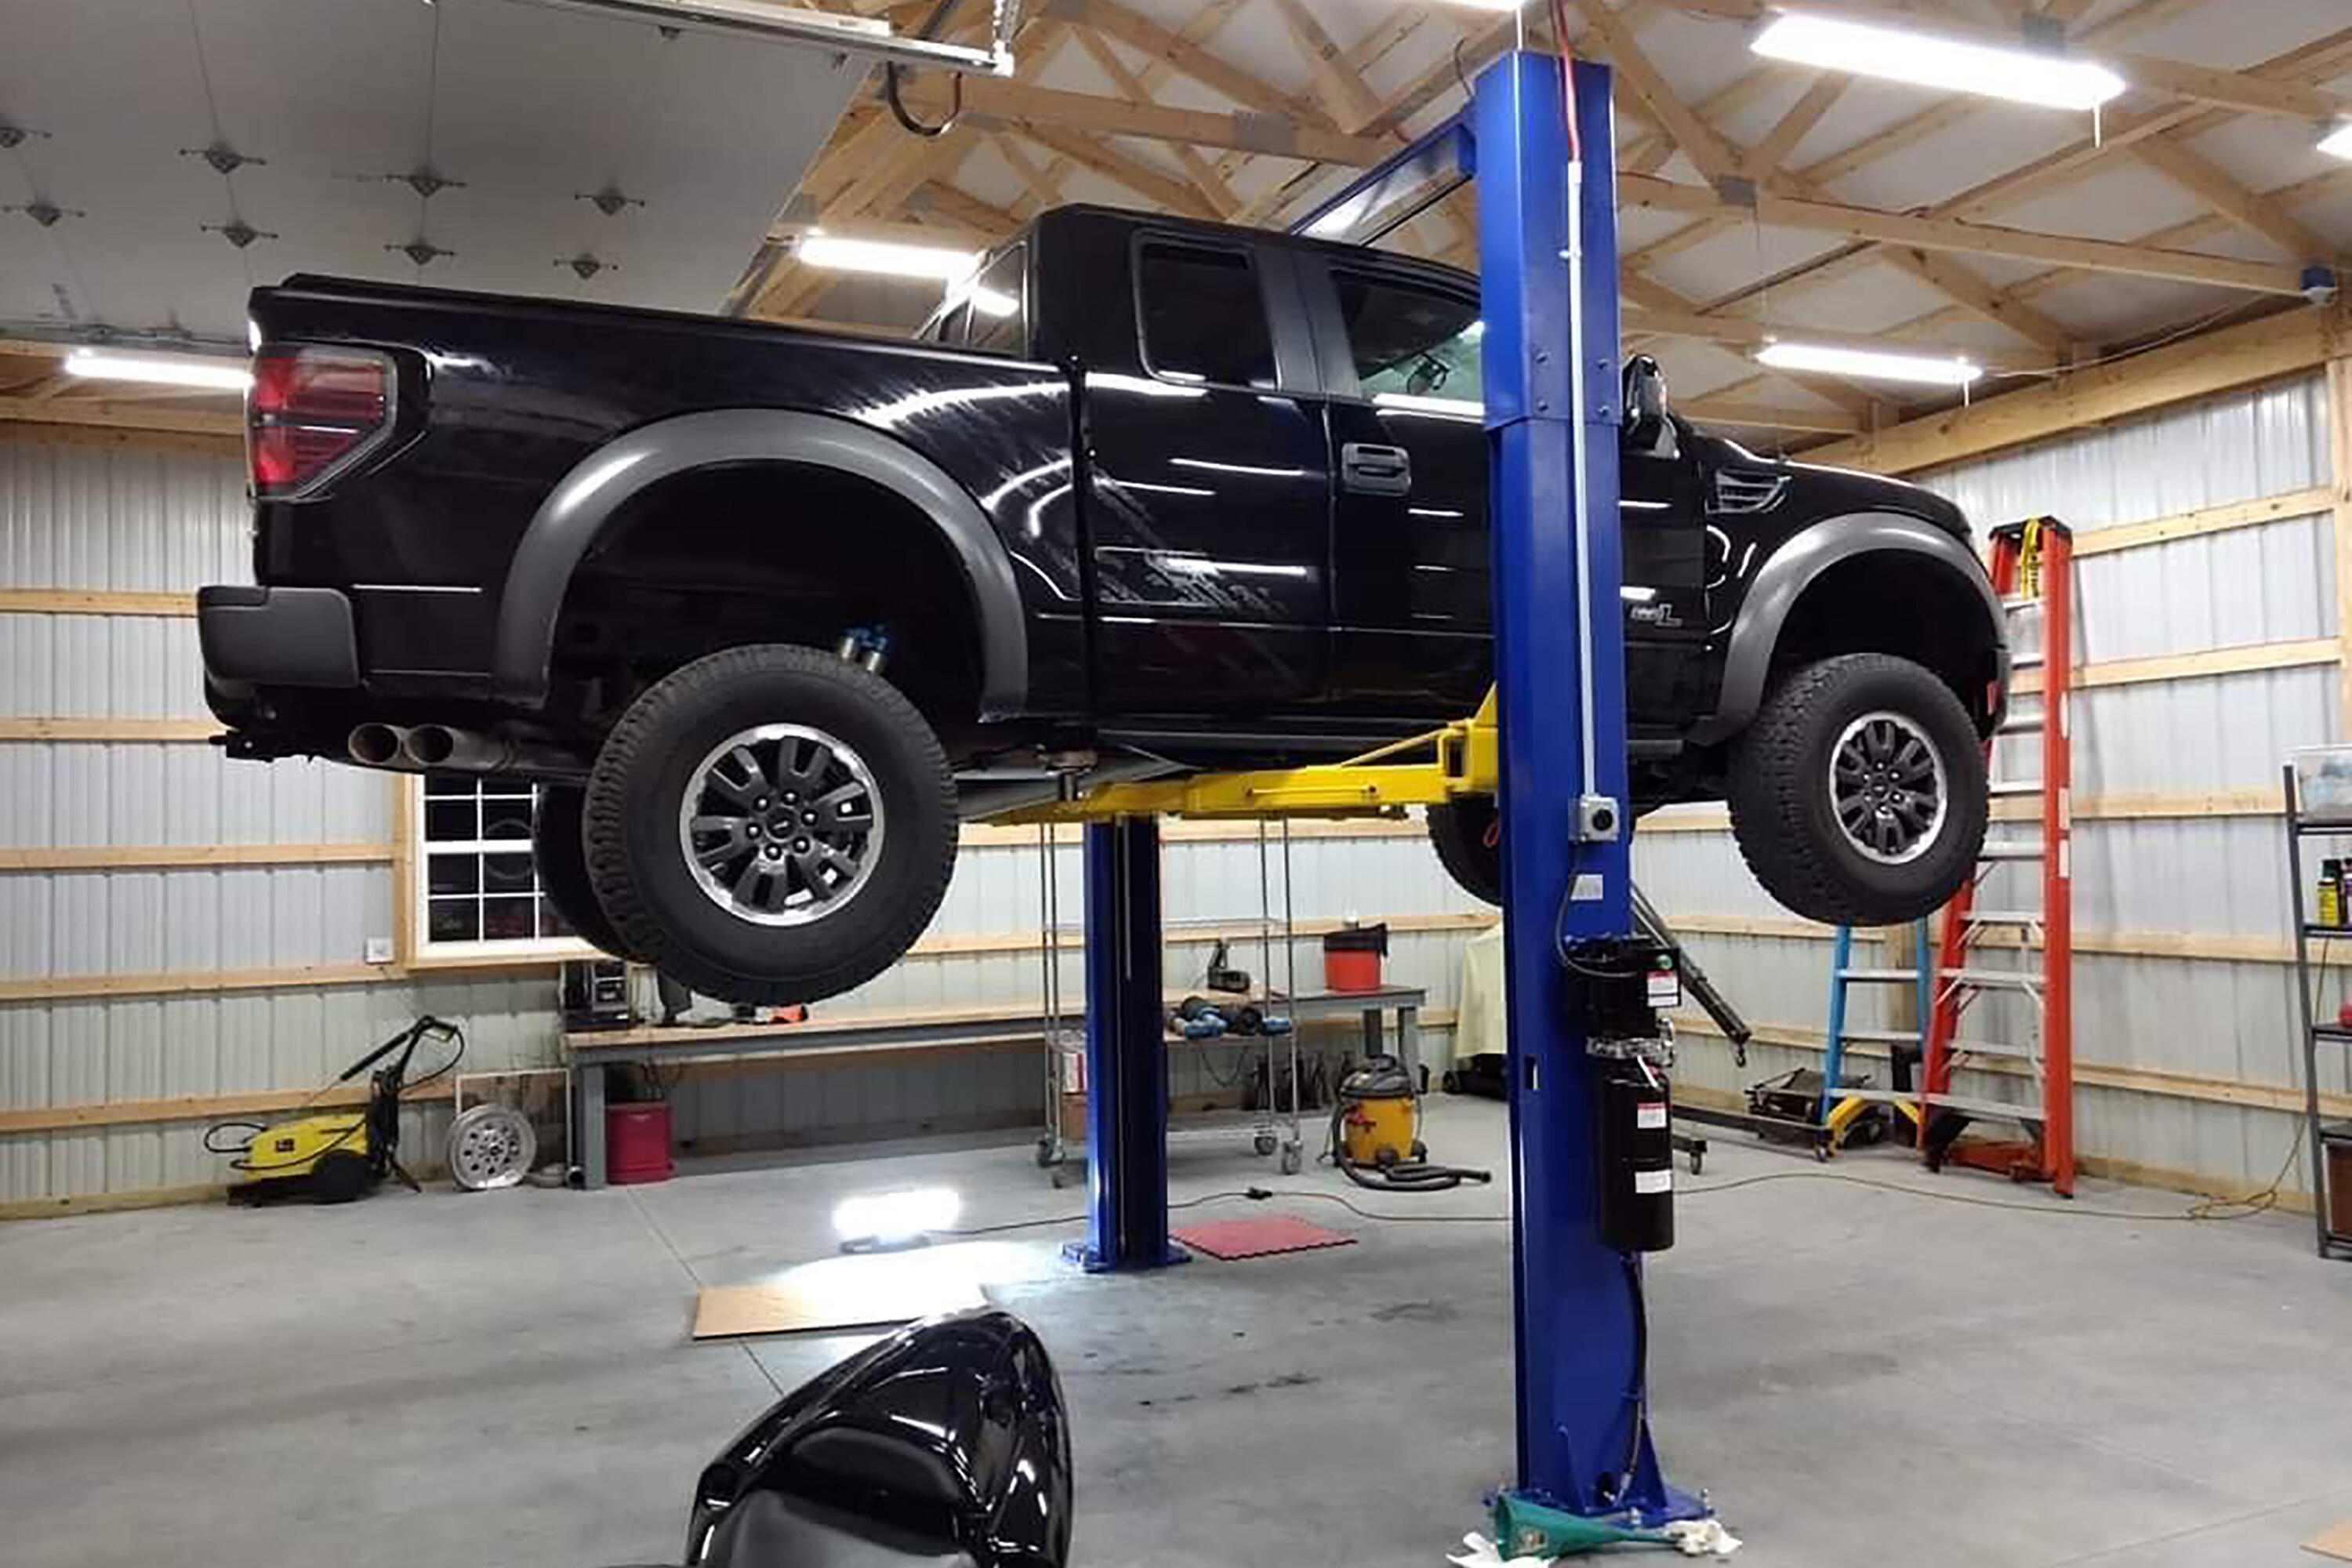 Best Car Lifts For Home Garages In 2021, Garage Car Lifts For Home